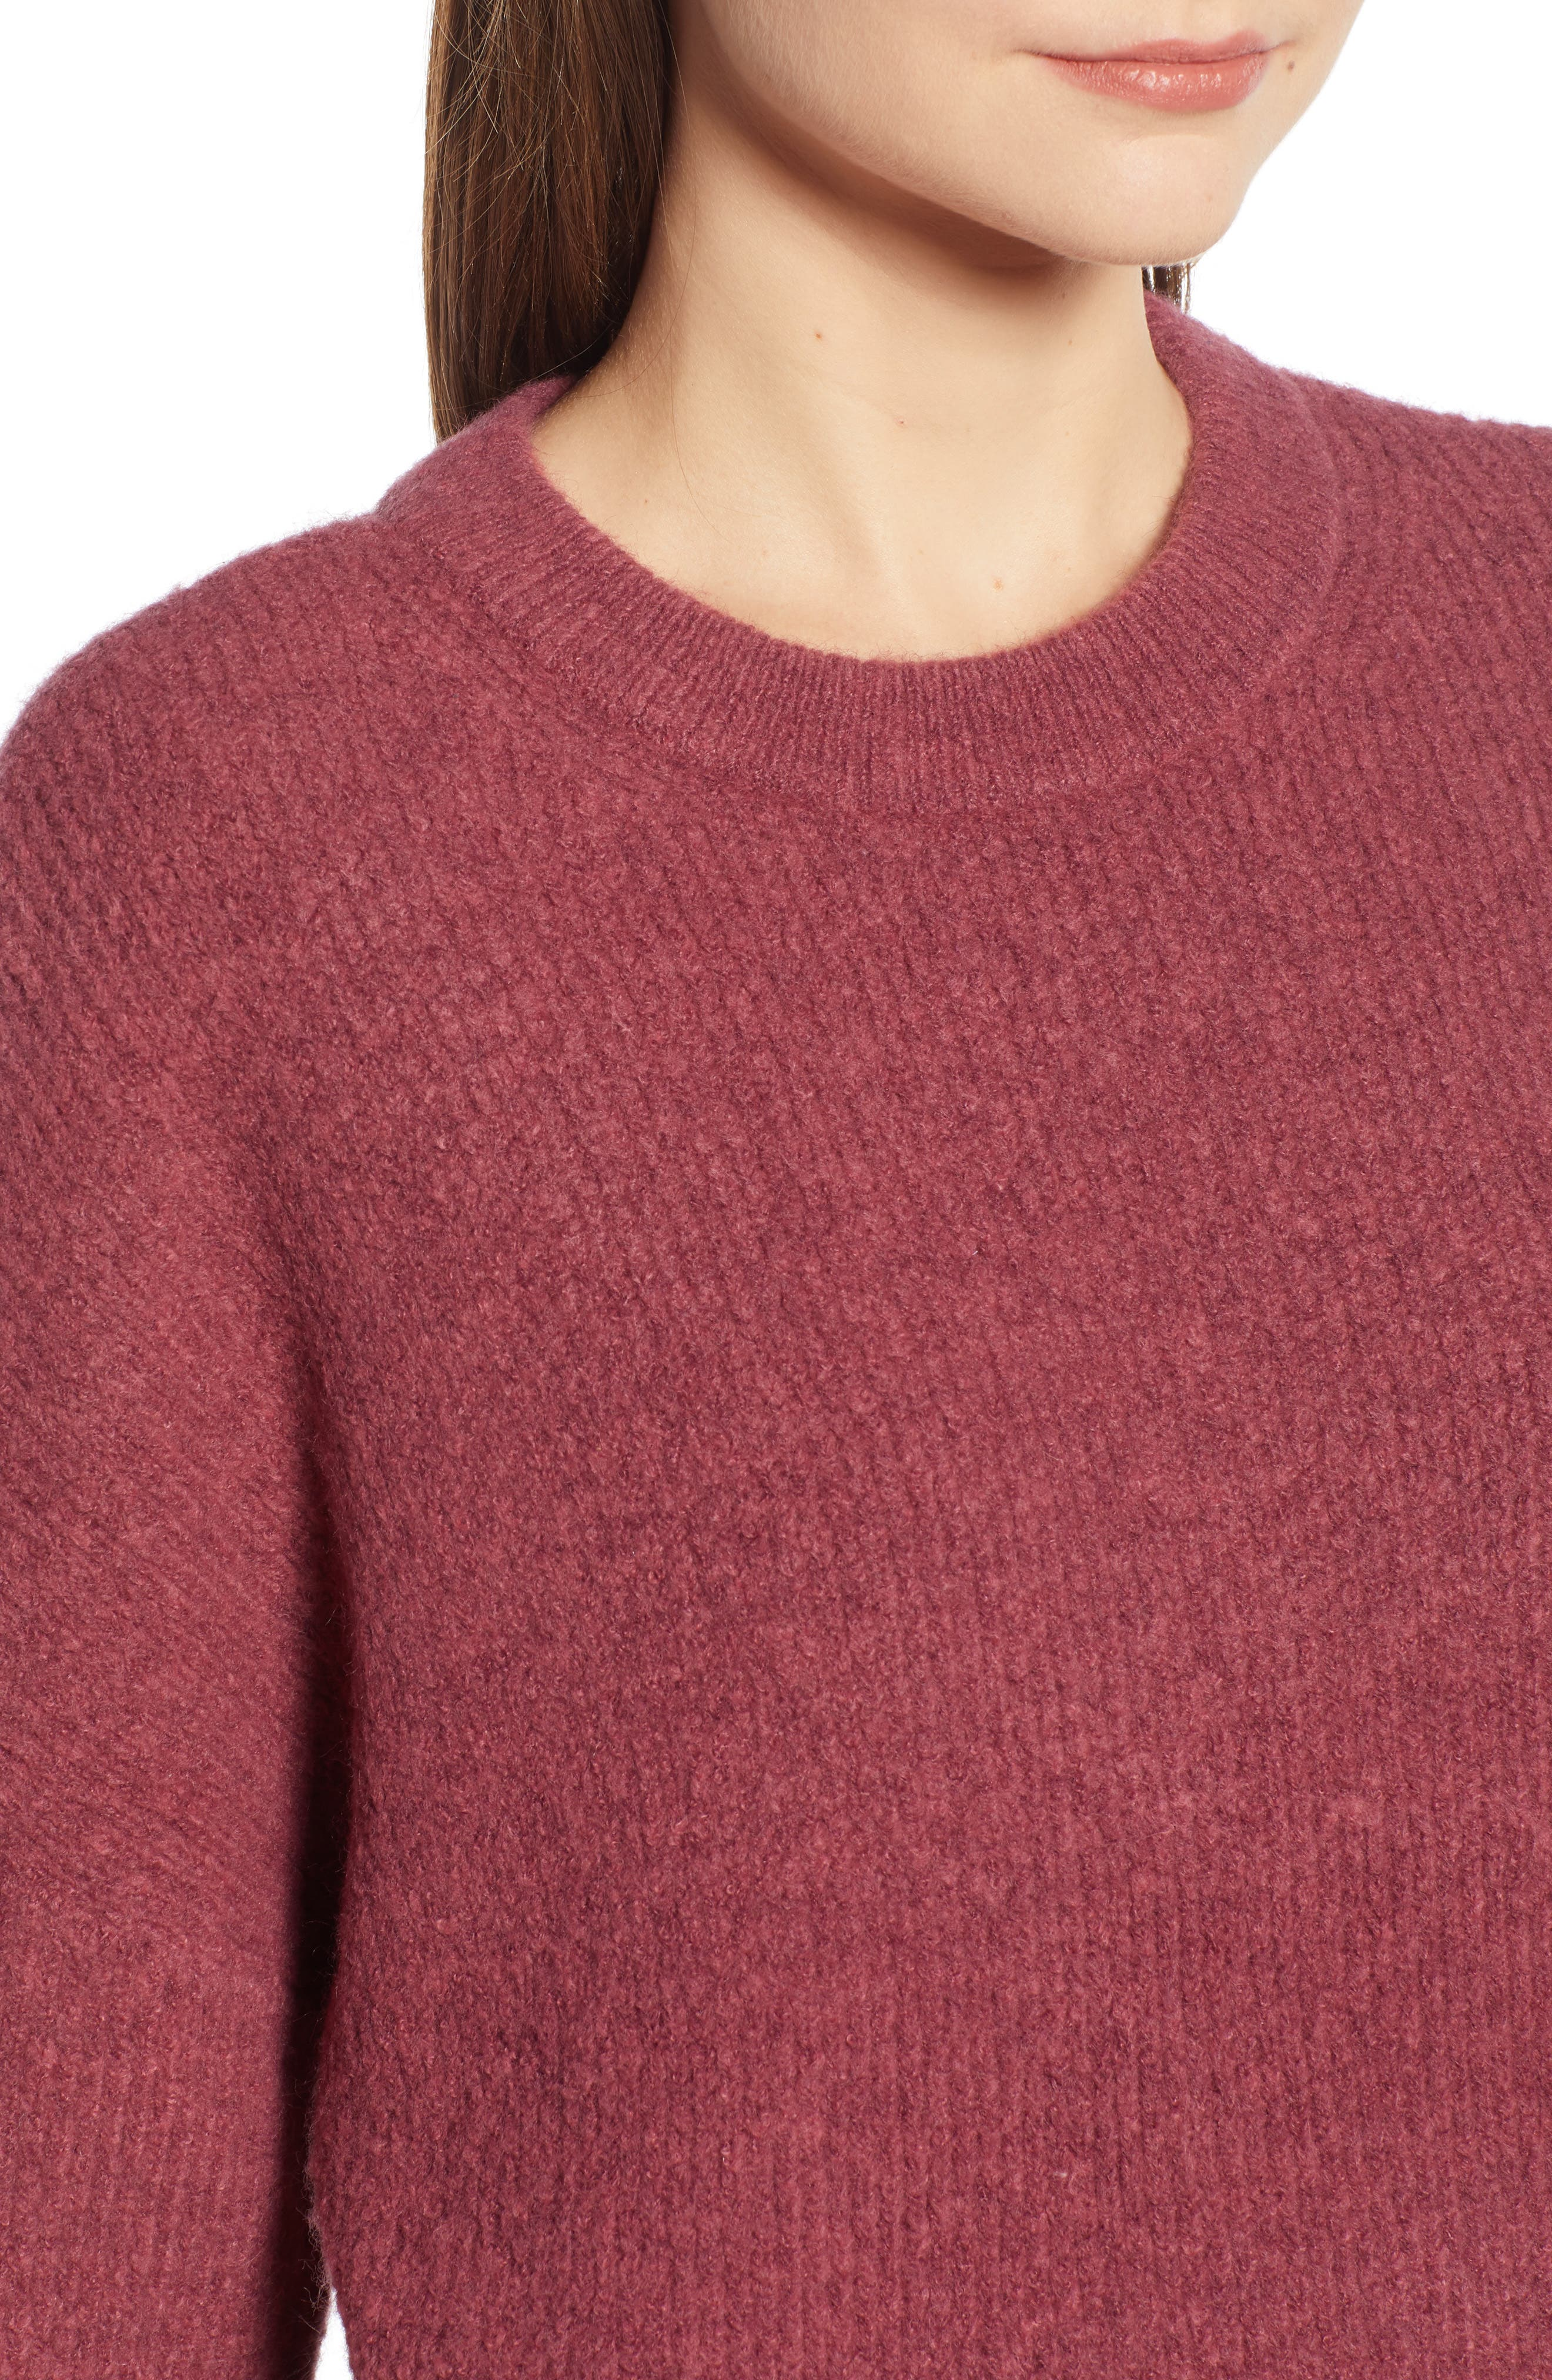 Fuzzy Oversize Sweater,                             Alternate thumbnail 4, color,                             BURGUNDY THORN